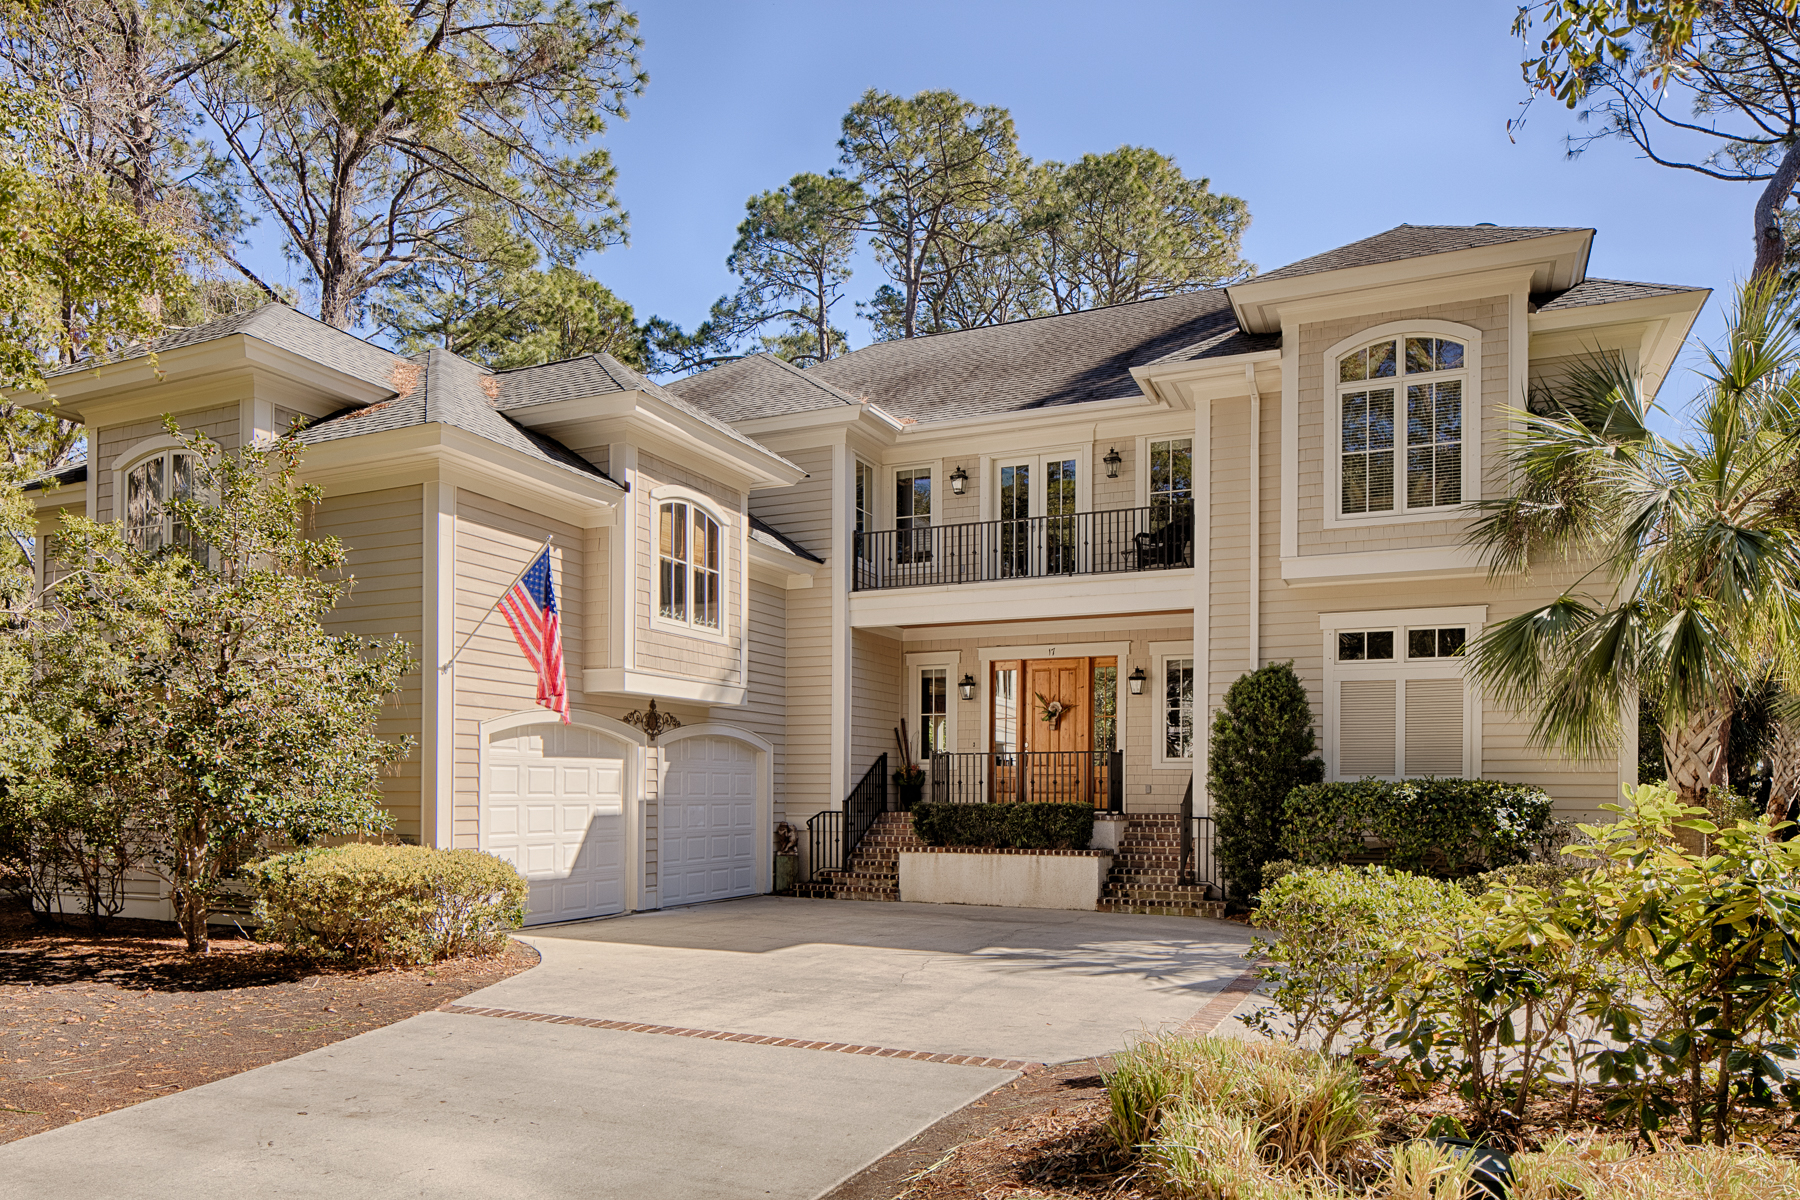 Single Family Home for Sale at 17 Wood Ibis Road 17 Wood Ibis Road Hilton Head Island, South Carolina 29928 United StatesIn/Around: Hilton Head